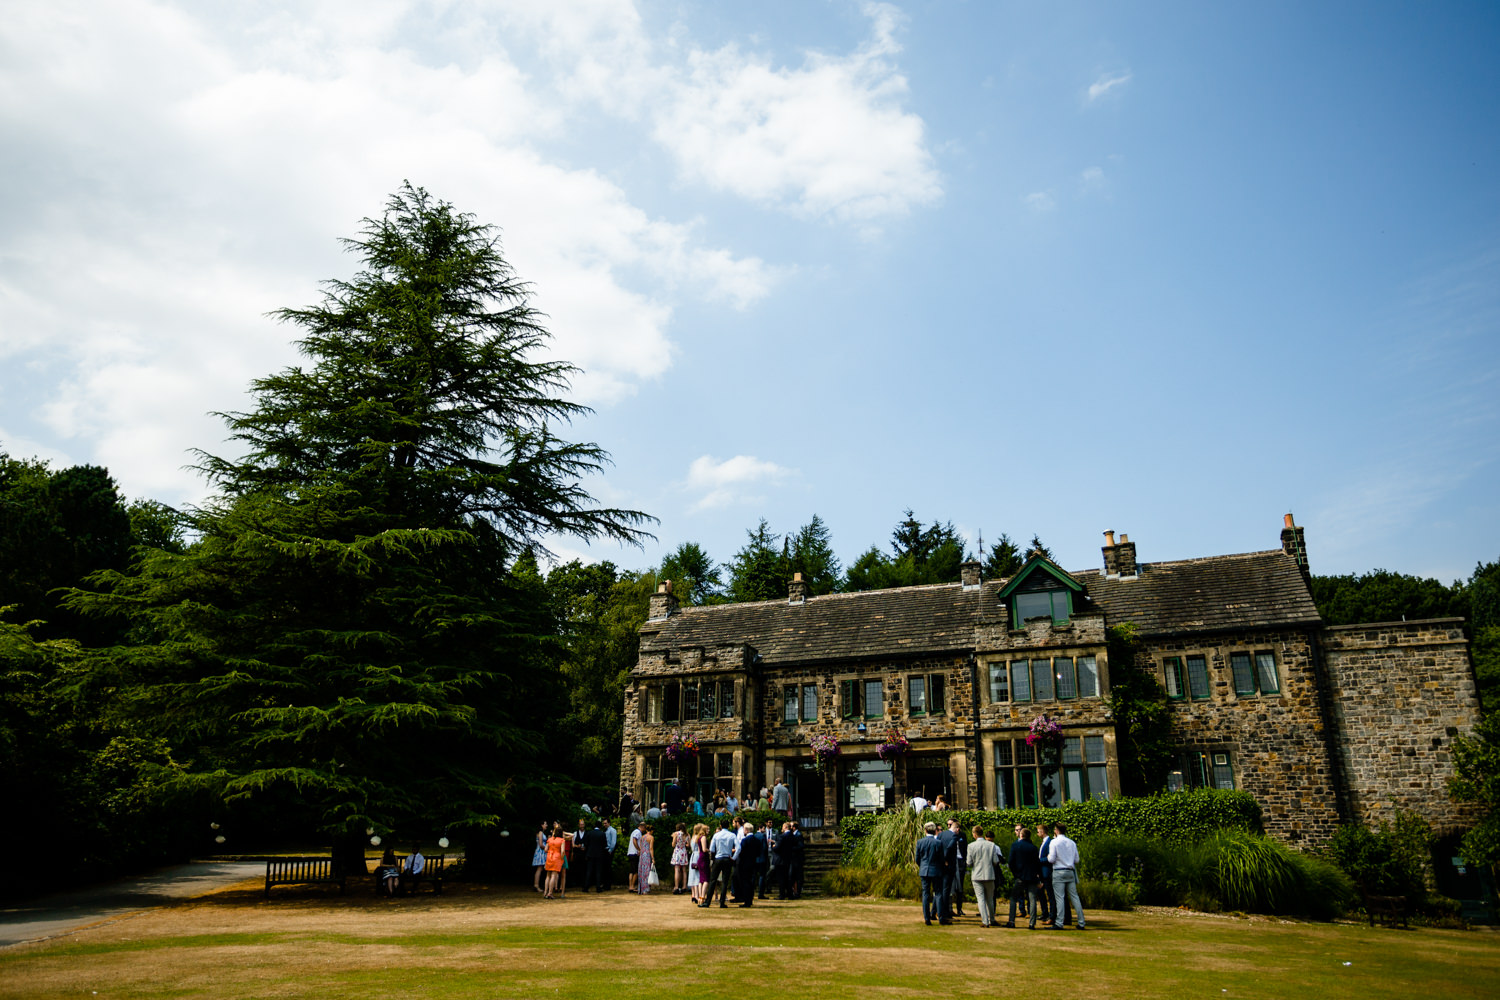 Summer drinks on the lawn, relaxed Whirlowbrook Hall photographers